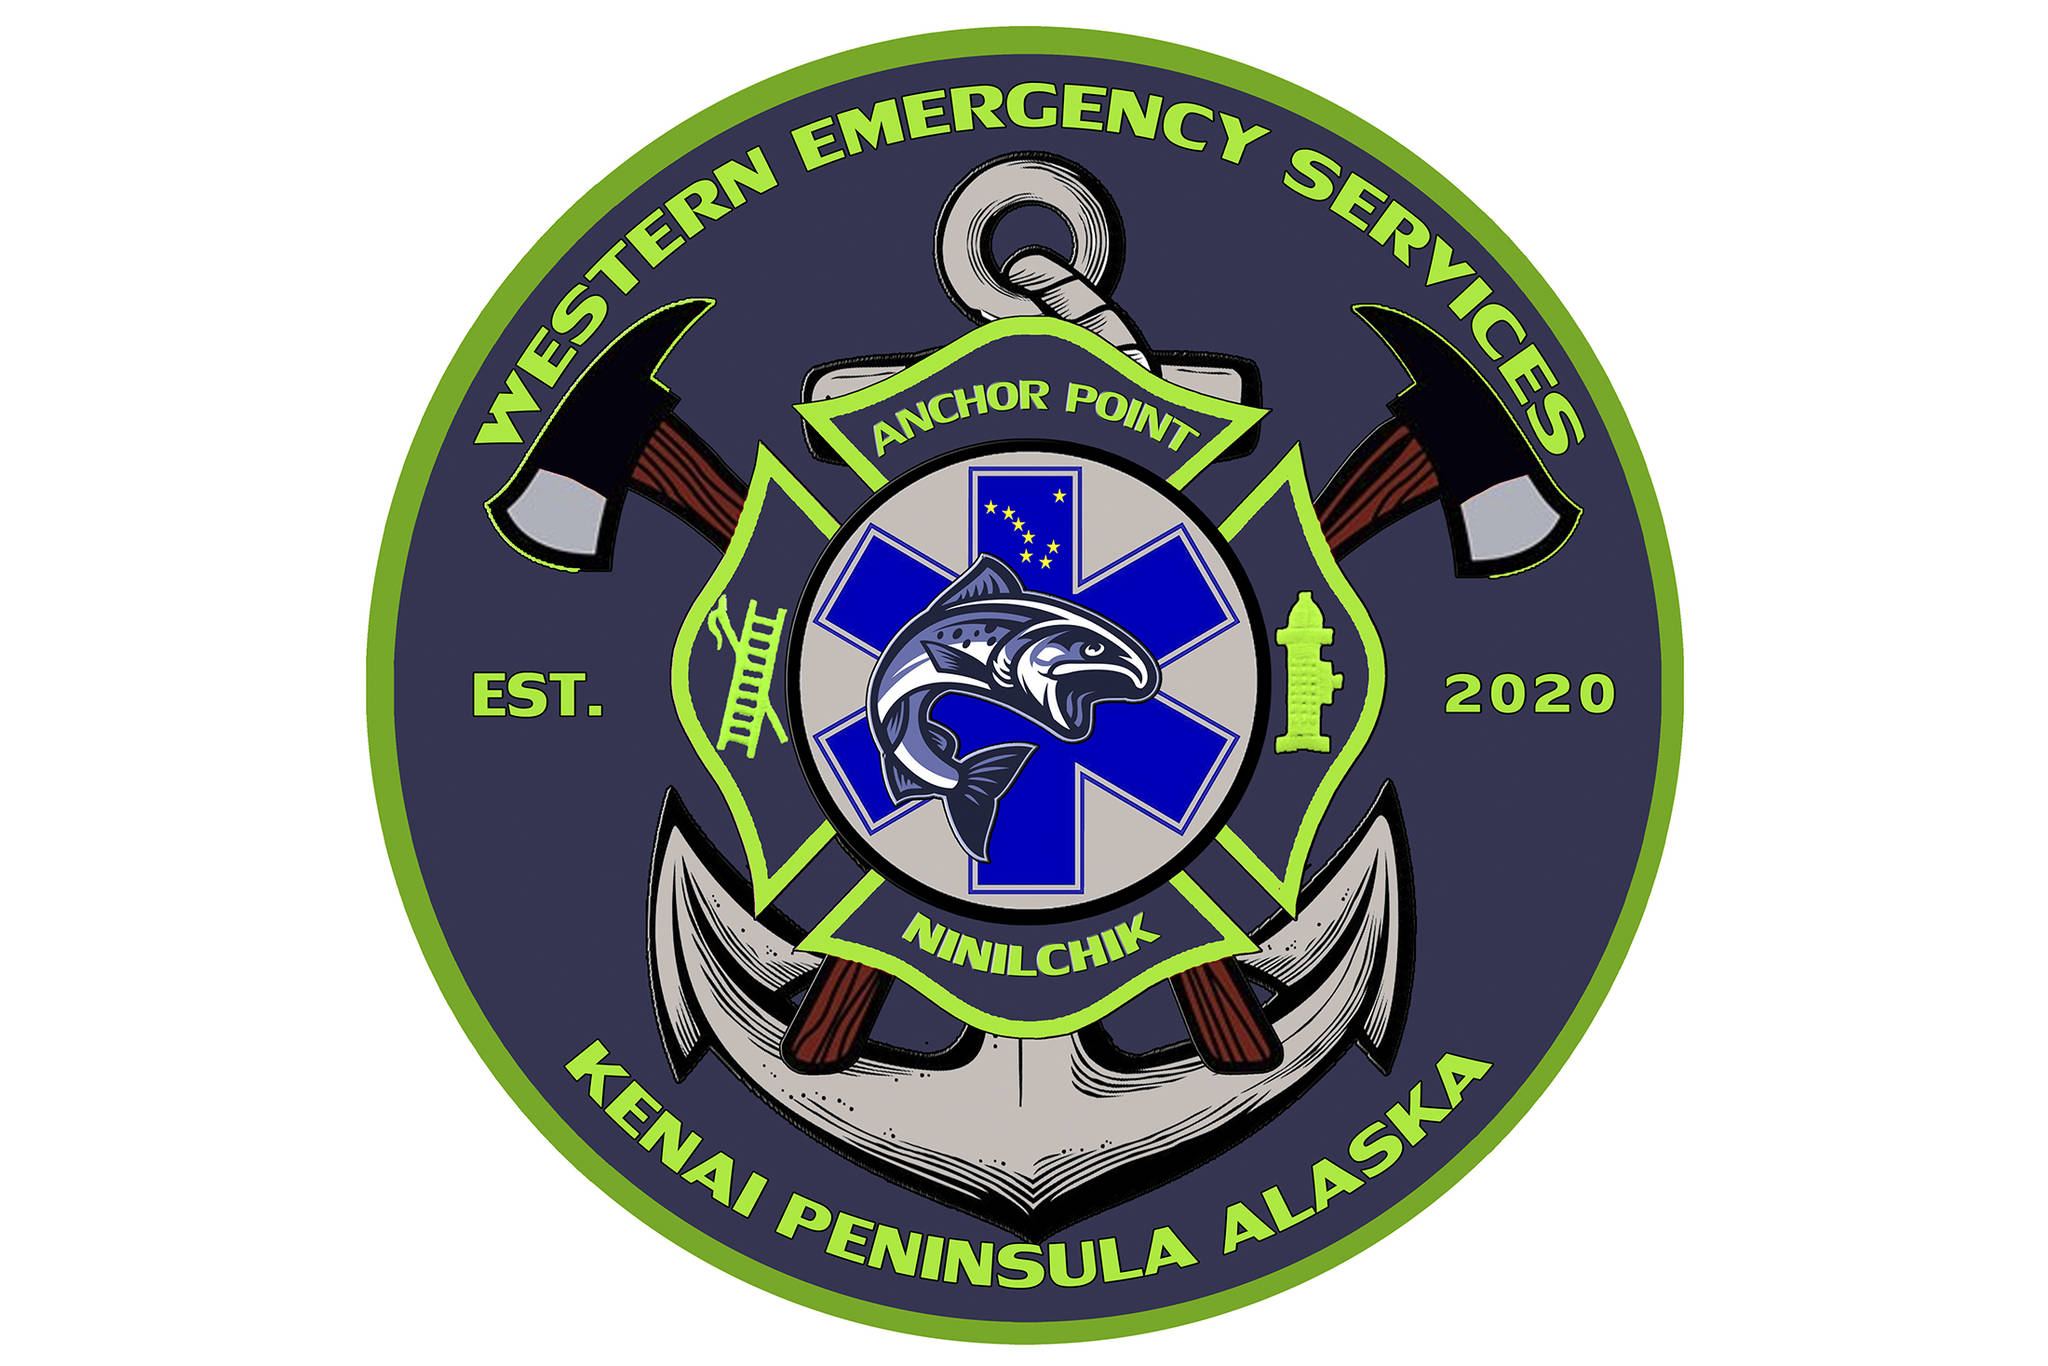 Western Emergency Services logo. (Courtesy image)